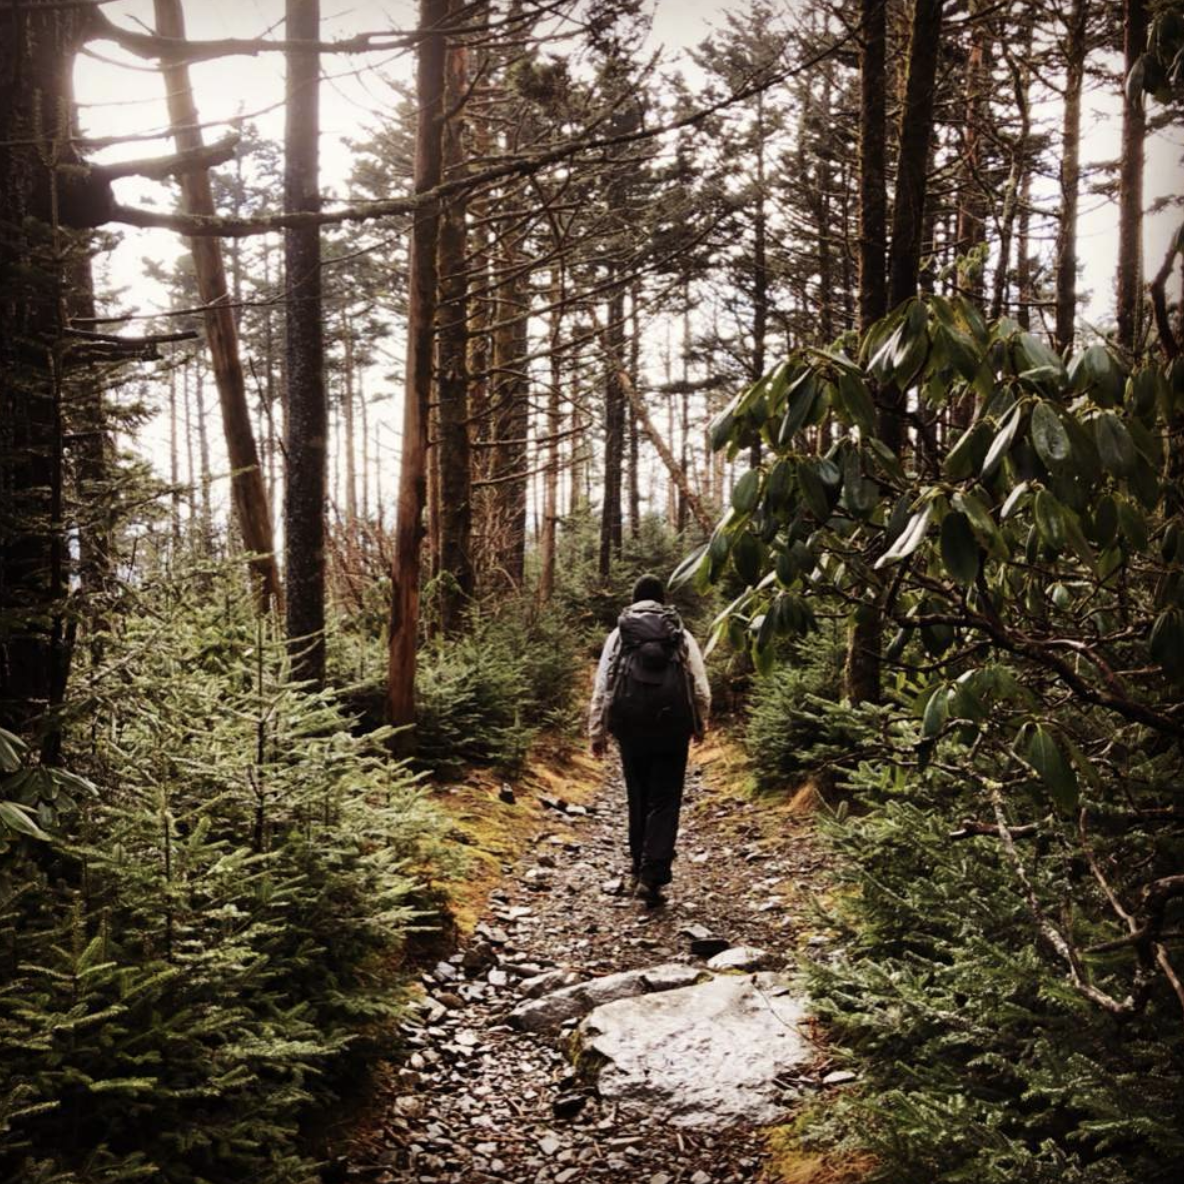 backpacking trips in the Great Smoky Mountains